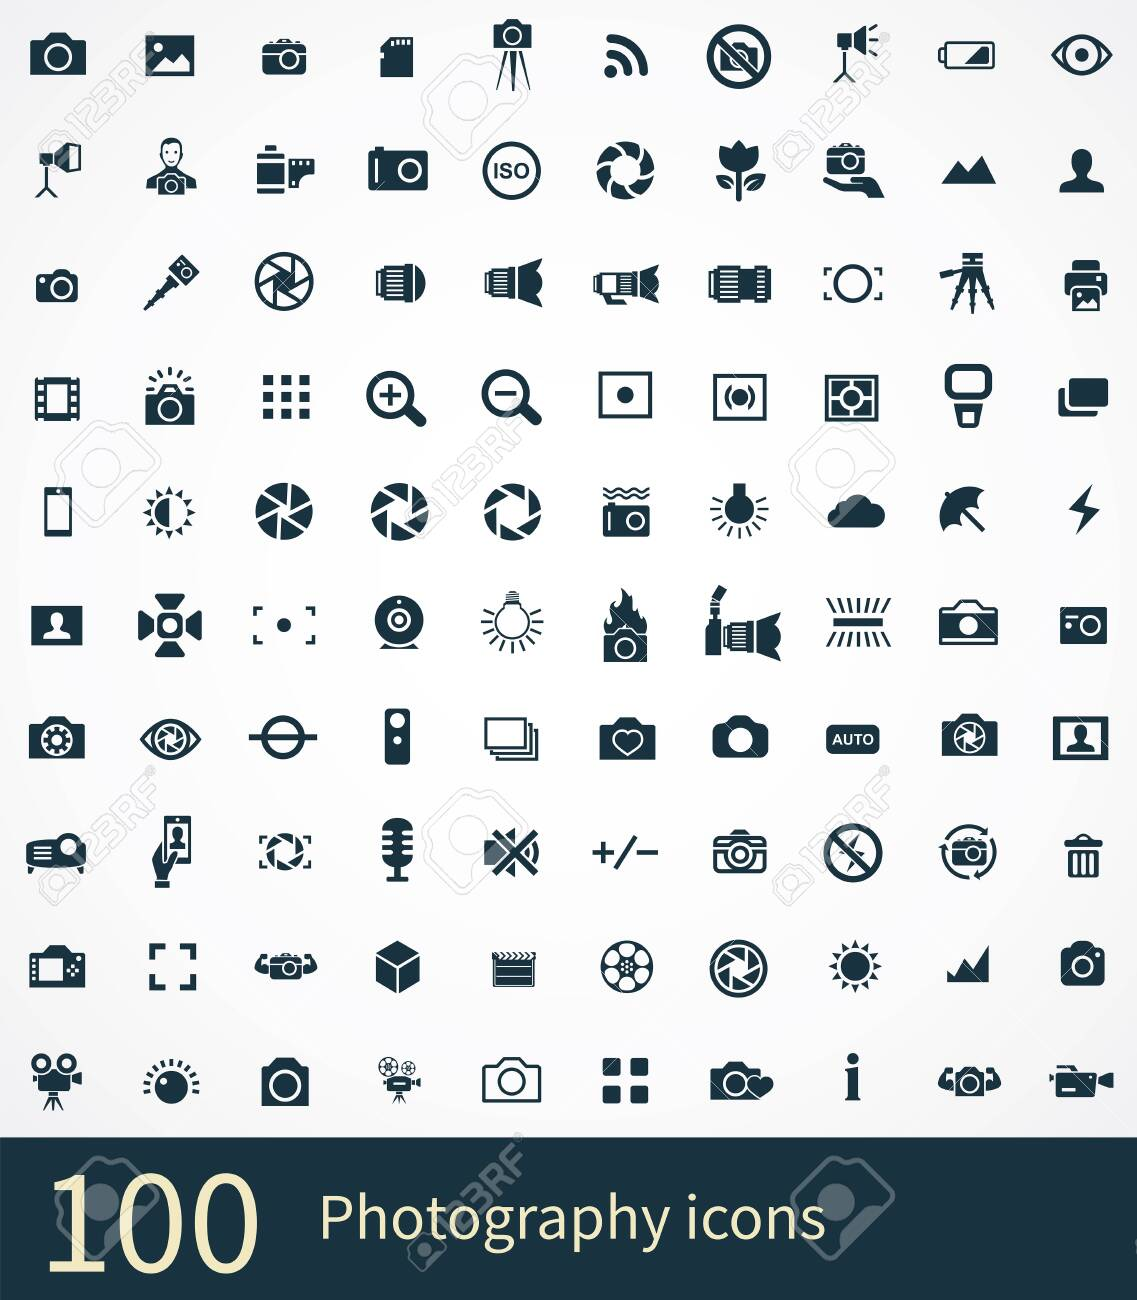 photography 100 icons universal set for web and UI - 130458016